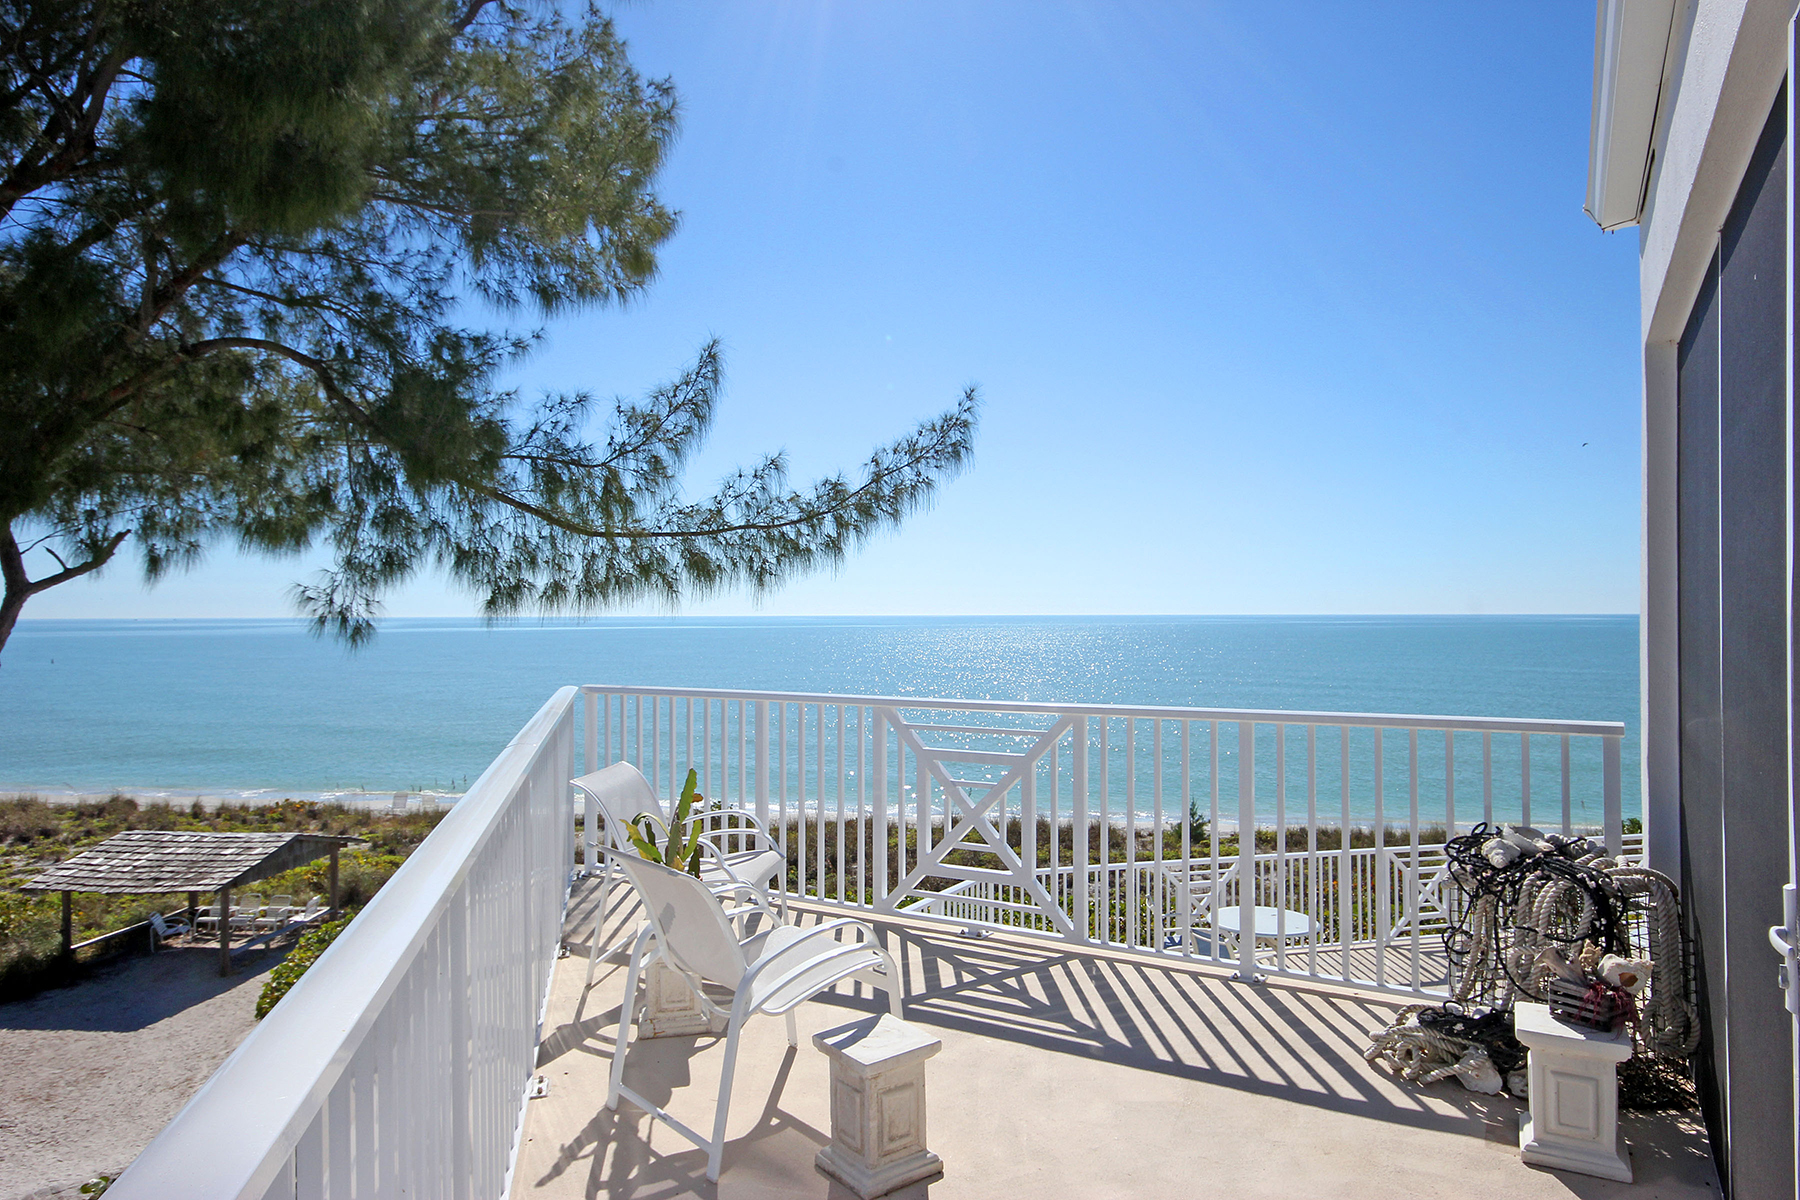 Condominium for Sale at SANIBEL - KIMBALL LODGE 3111 W Gulf Dr 306, Sanibel, Florida 33957 United States